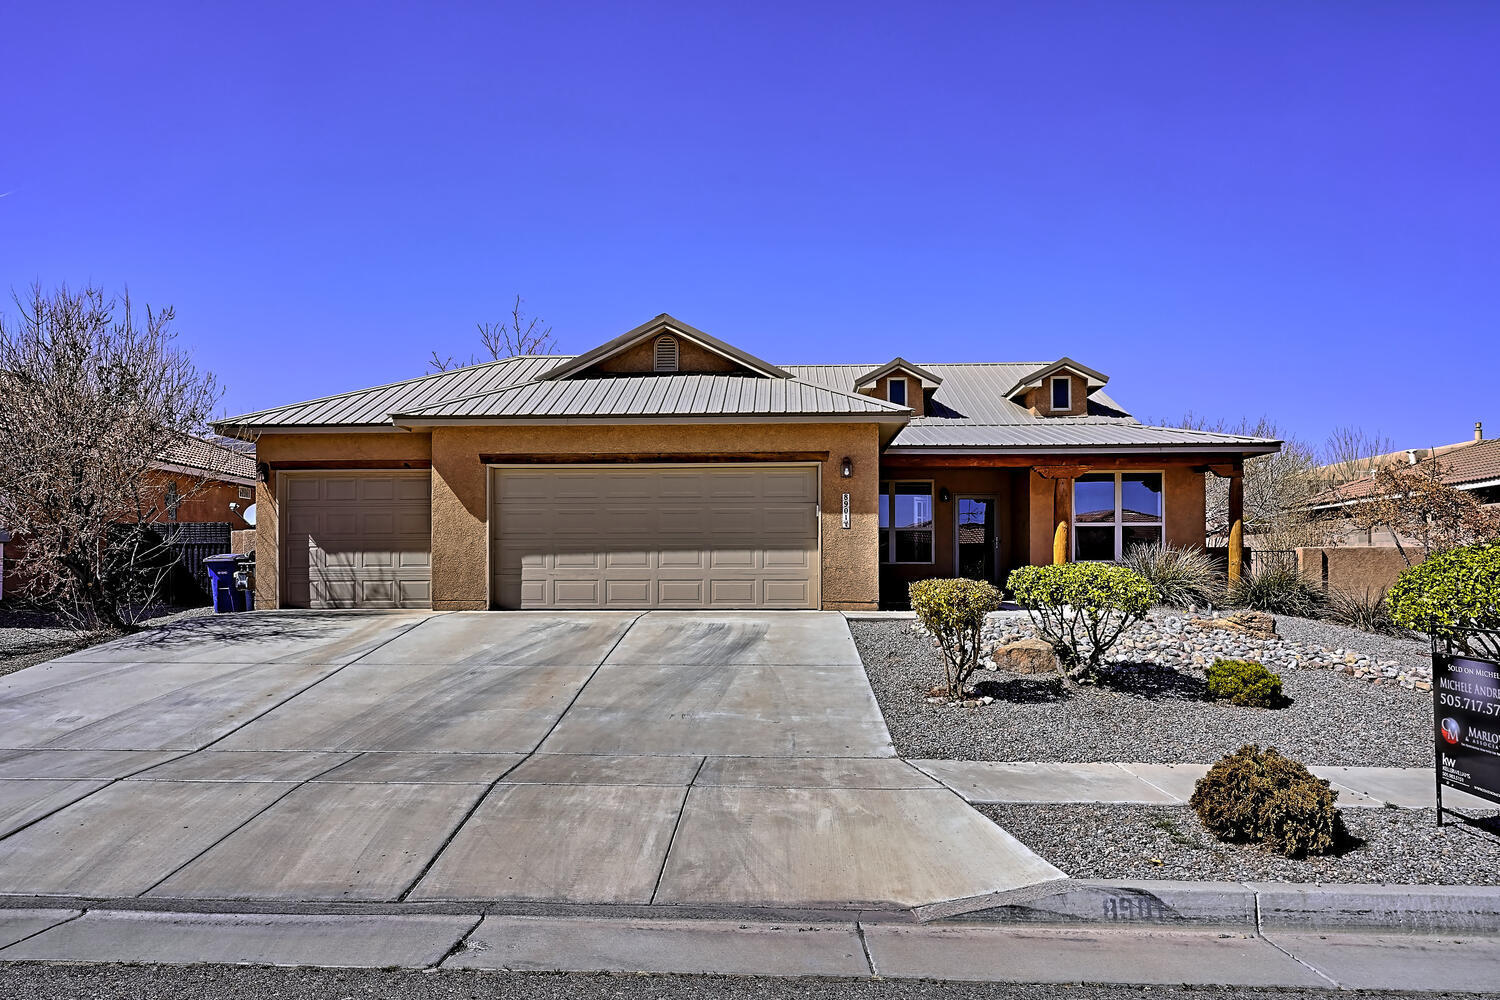 Stunning single story upgraded Northern New Mexico style home with metal roof, 4br or 3br plus office, 2ba, 3 car garage in prestigious Petroglyphs subdivision. Location, location! Kitchen features granite countertops, stainless steel appliances bar, bk. nook, spacious pantry. Huge MB with Separate jetted tub, double sinks, spacious walk in closet. Sep. formal dining. Great room features a ceiling fan and wood burning FP with a gas starter. Newer water heater, High ceilings, light and bright. Private, nice sized backyard with covered patio for BBQ's, private and walled with a large dog run on side yard. Mins. to the trails at Petroglyph National Monument. Close to shopping and the freeway, easy access. PRICED TO SELL, show this beautiful home today!!